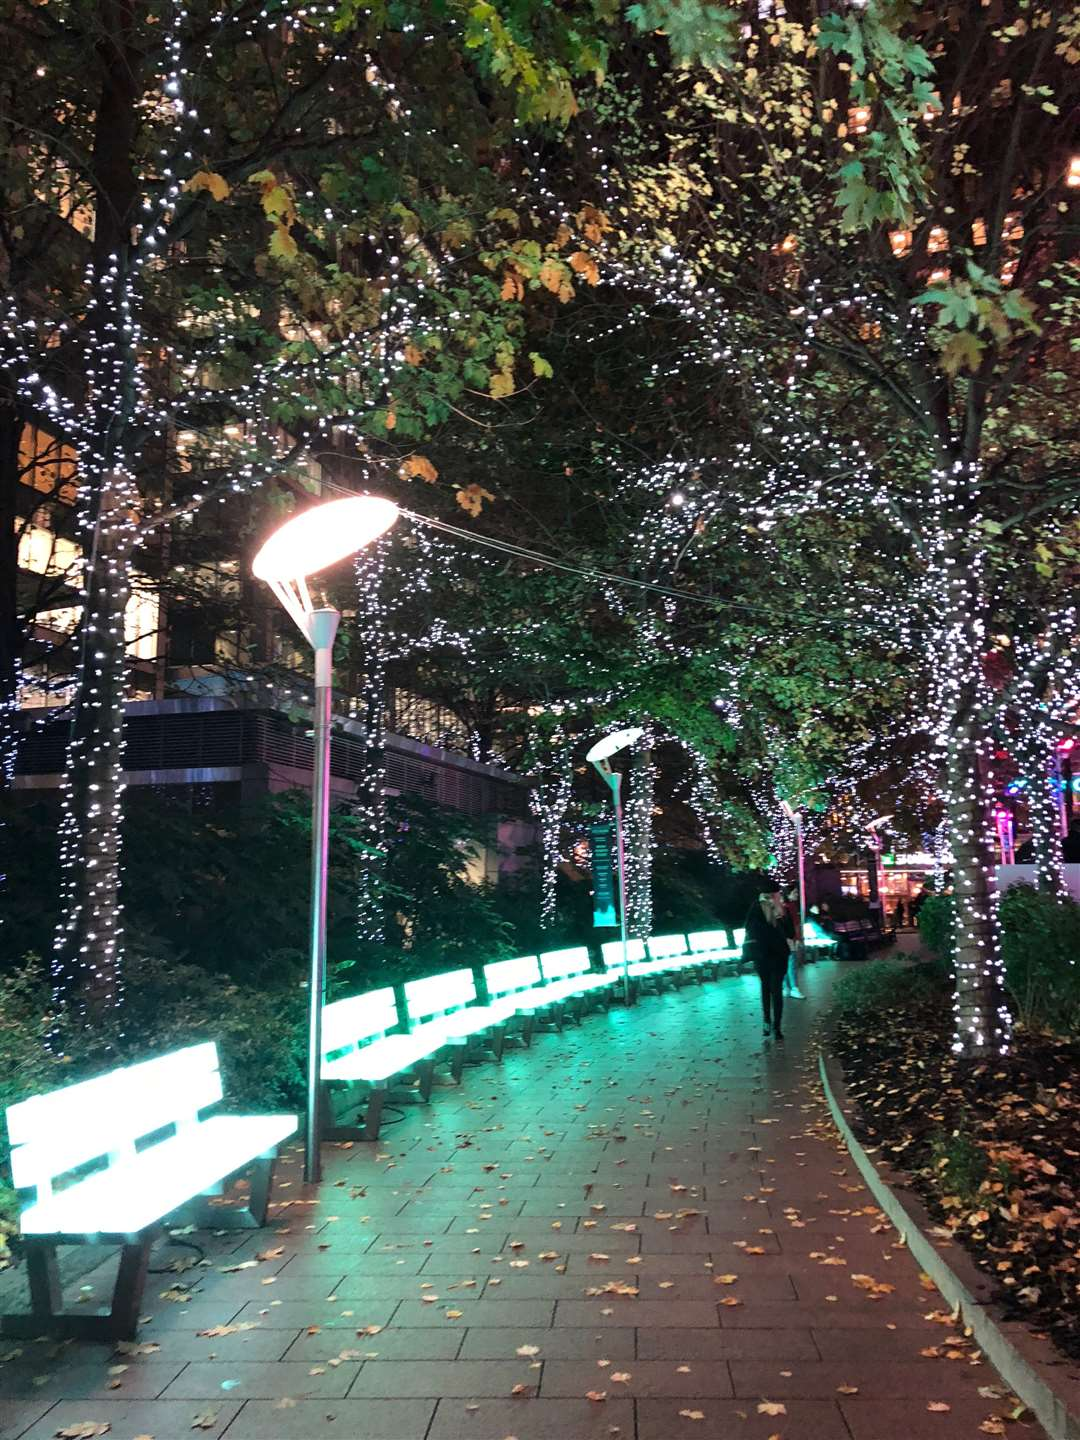 The twinkling lights make for a perfect Christmas setting at Canary Wharf Ice Rink (5185821)